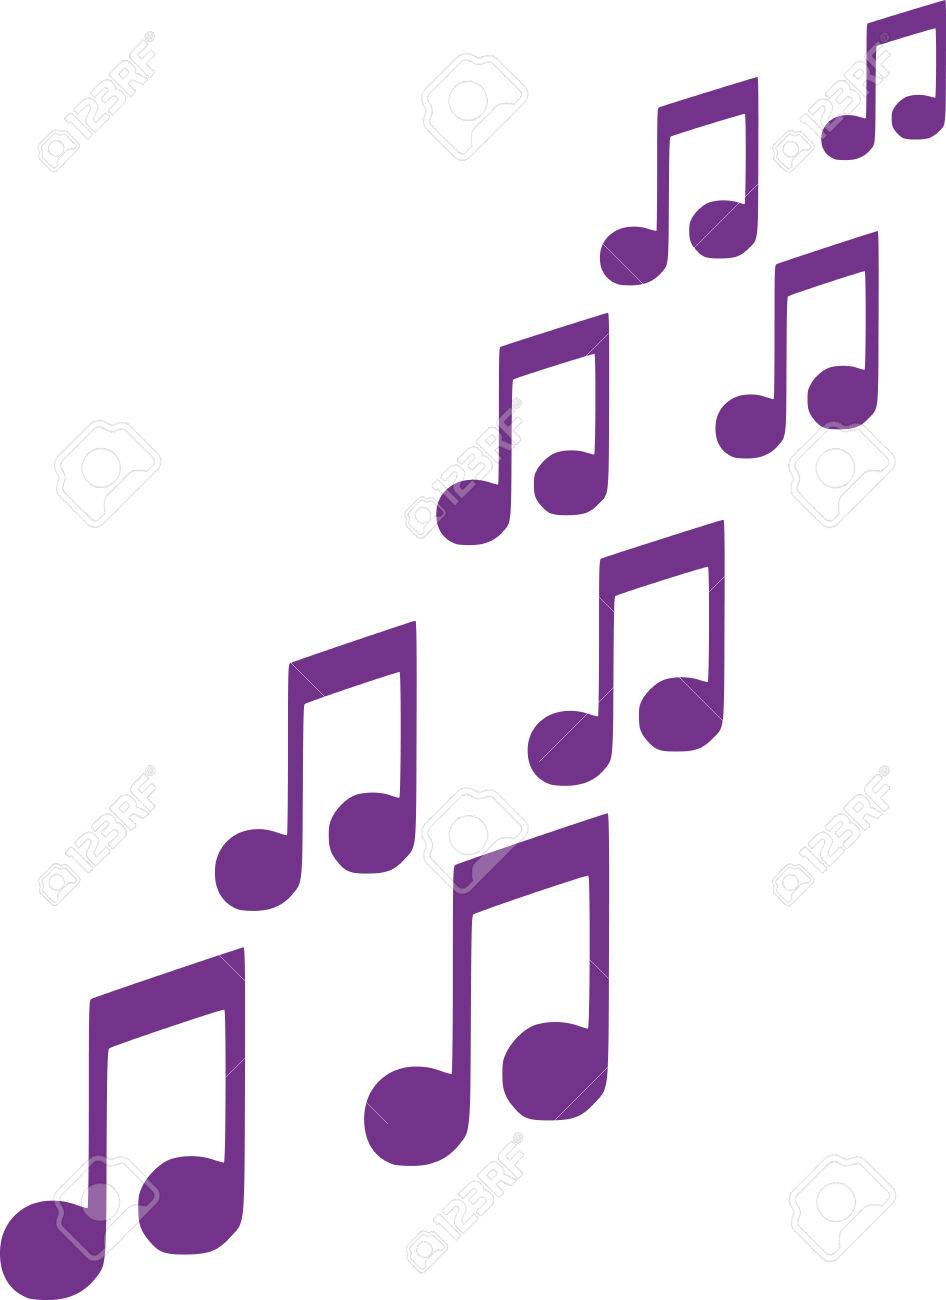 music notes flying up royalty free cliparts vectors and stock rh 123rf com Music Note Clip Art White Music Note Vector